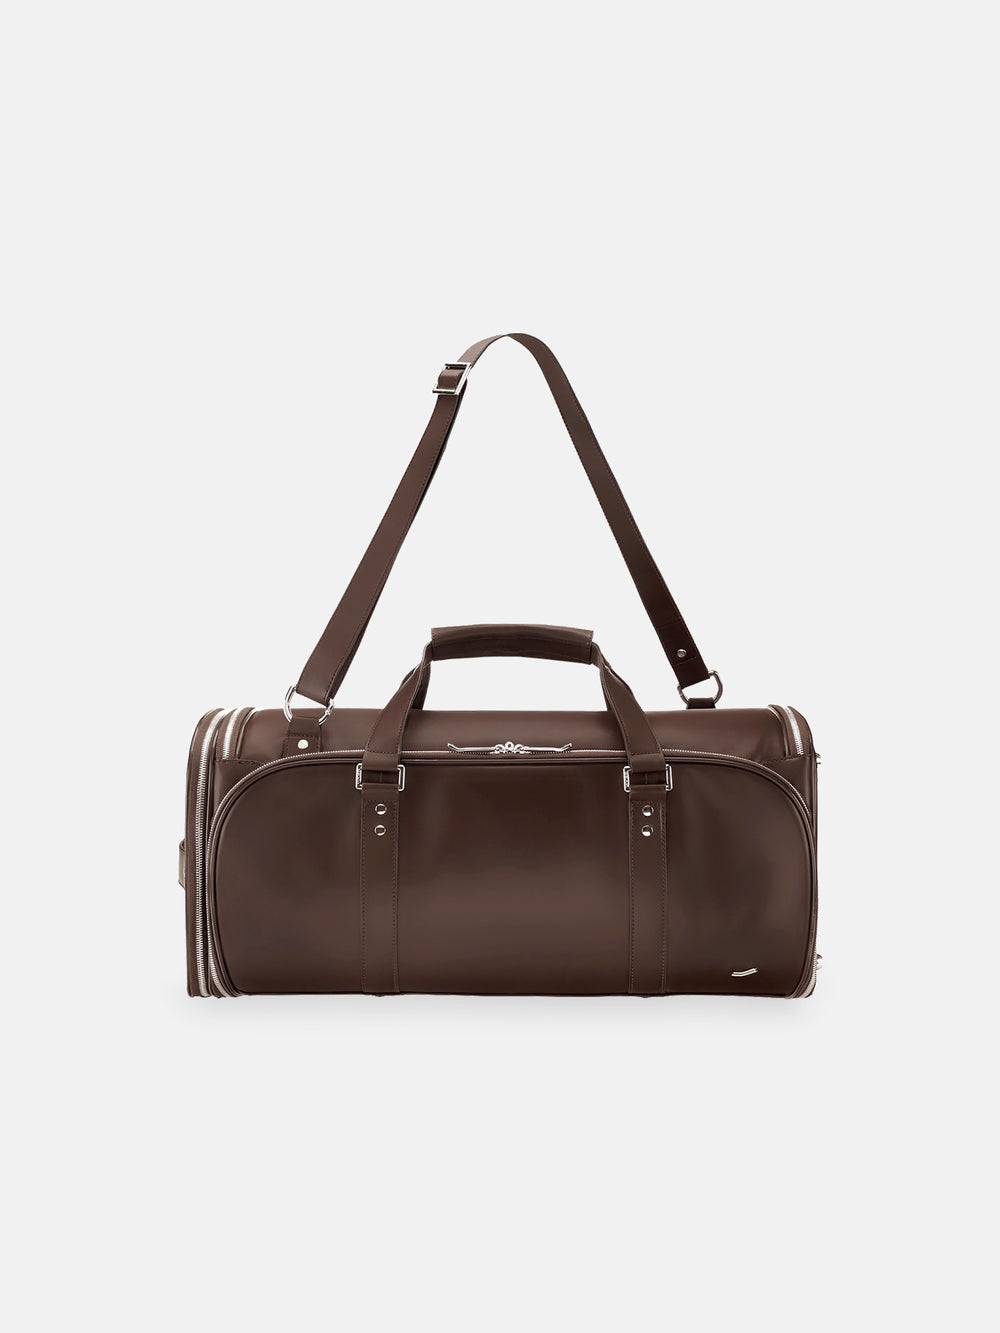 f35 garment bag brown leather braunes leder